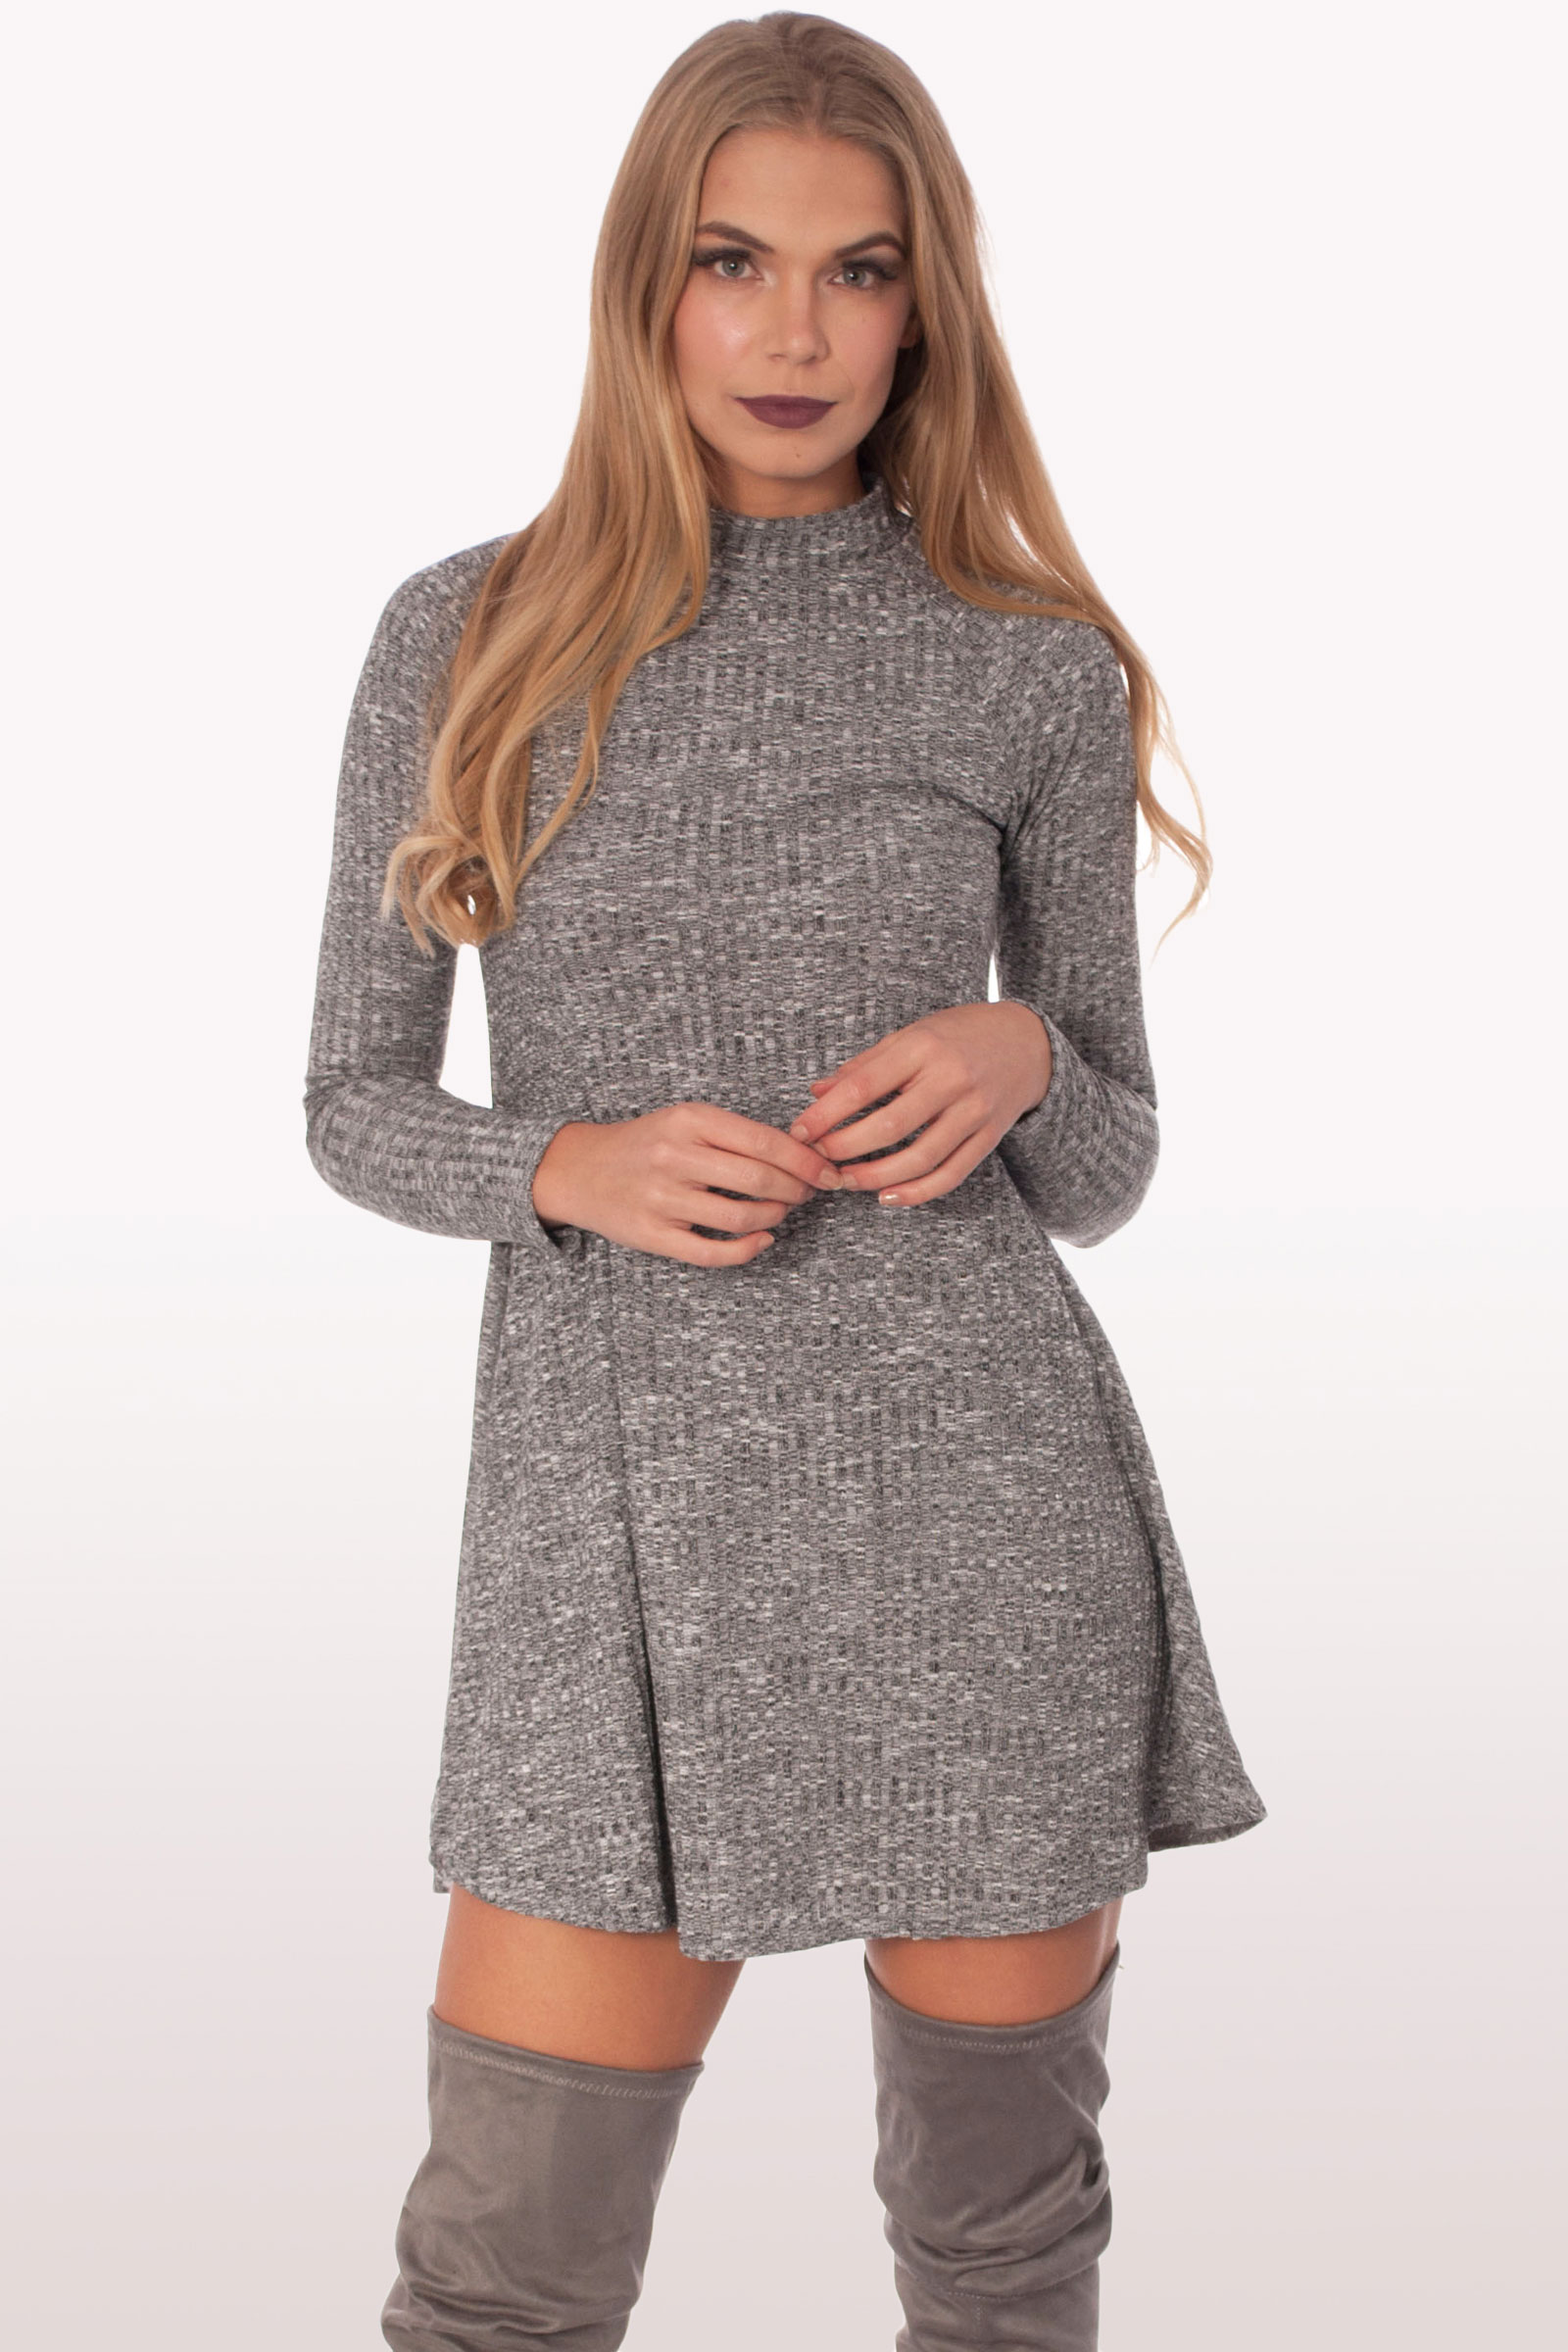 A polo neck, roll-neck,, turtleneck (US, Canada), or skivvy (Australia, New Zealand) is a garment—usually a sweater—with a close-fitting, round, and high part similar to a collar that folds over and covers the neck.